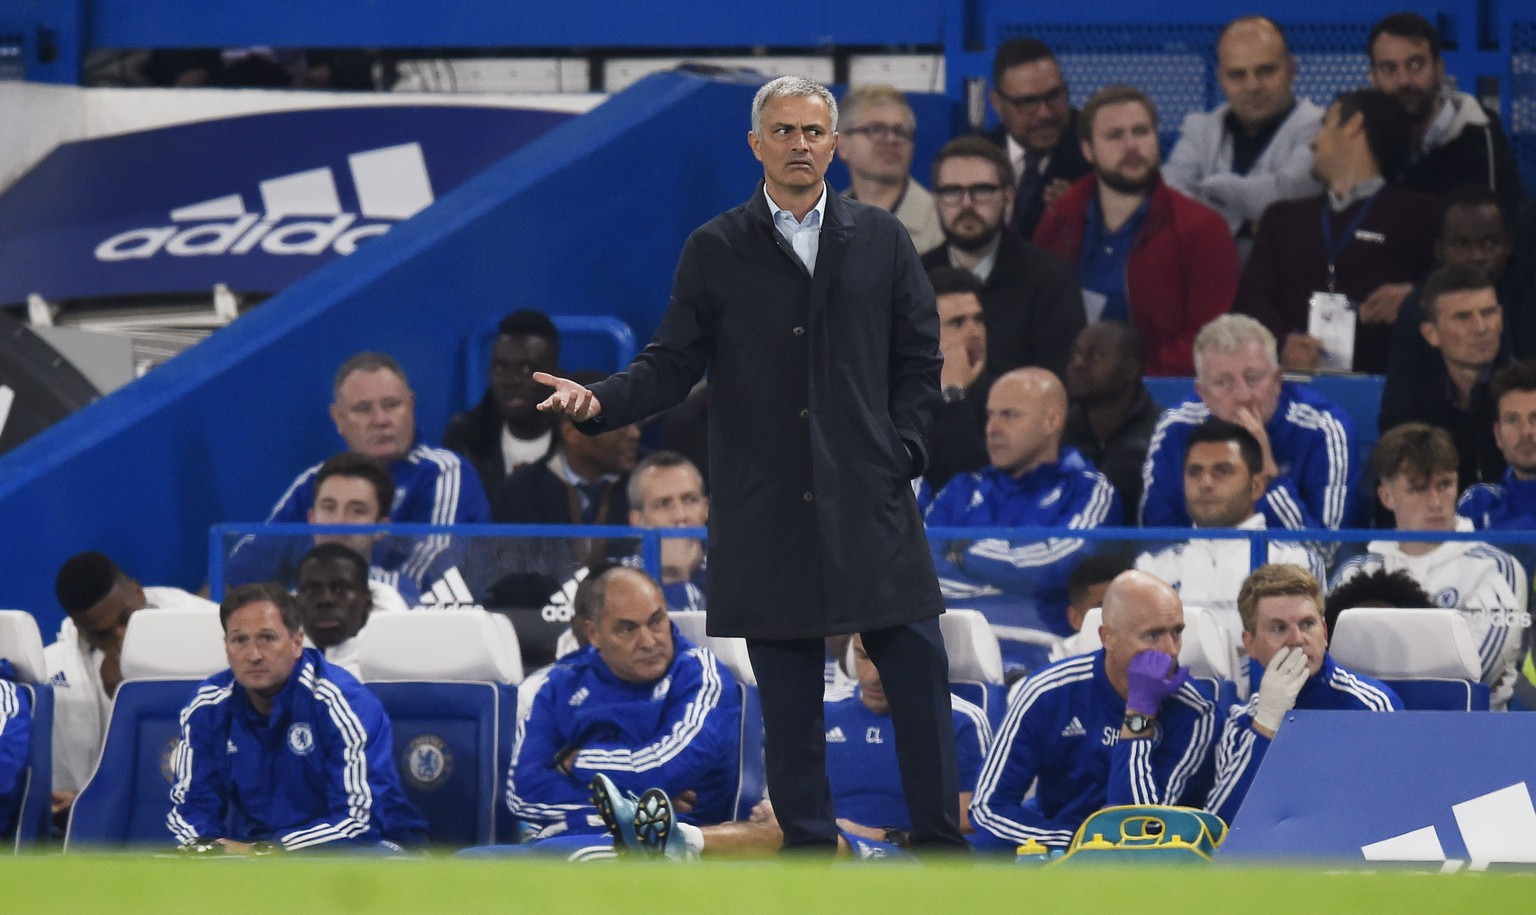 Football - Chelsea v Southampton - Barclays Premier League - Stamford Bridge - 3/10/15